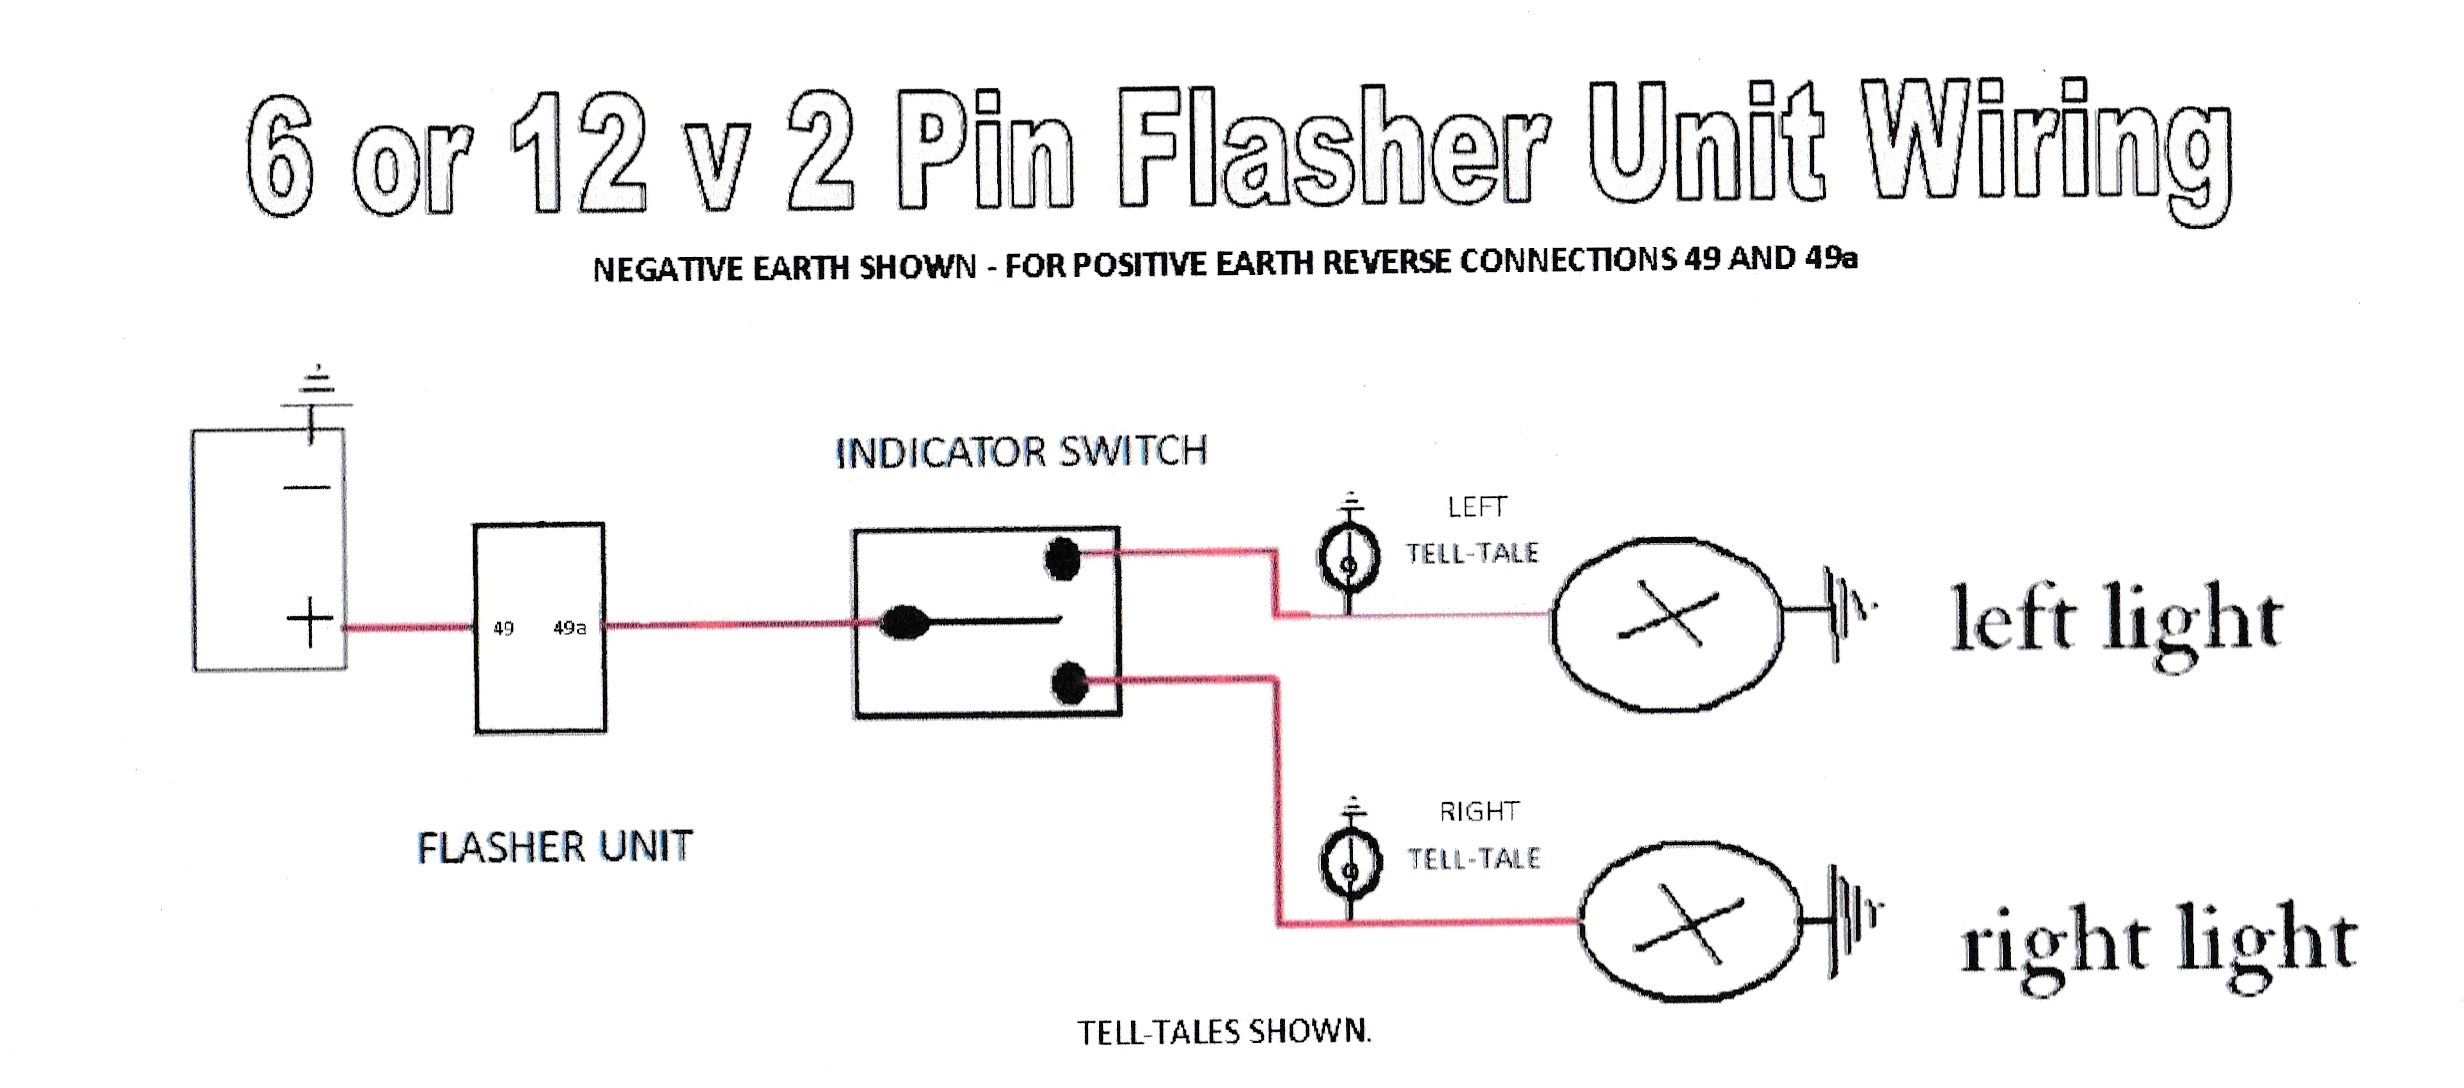 3 pin led flasher relay wiring diagram Collection-12v Led Flasher Circuit Diagram Best 2 Pin Flasher Relay Wiring Diagram Wiring Diagram 7-s